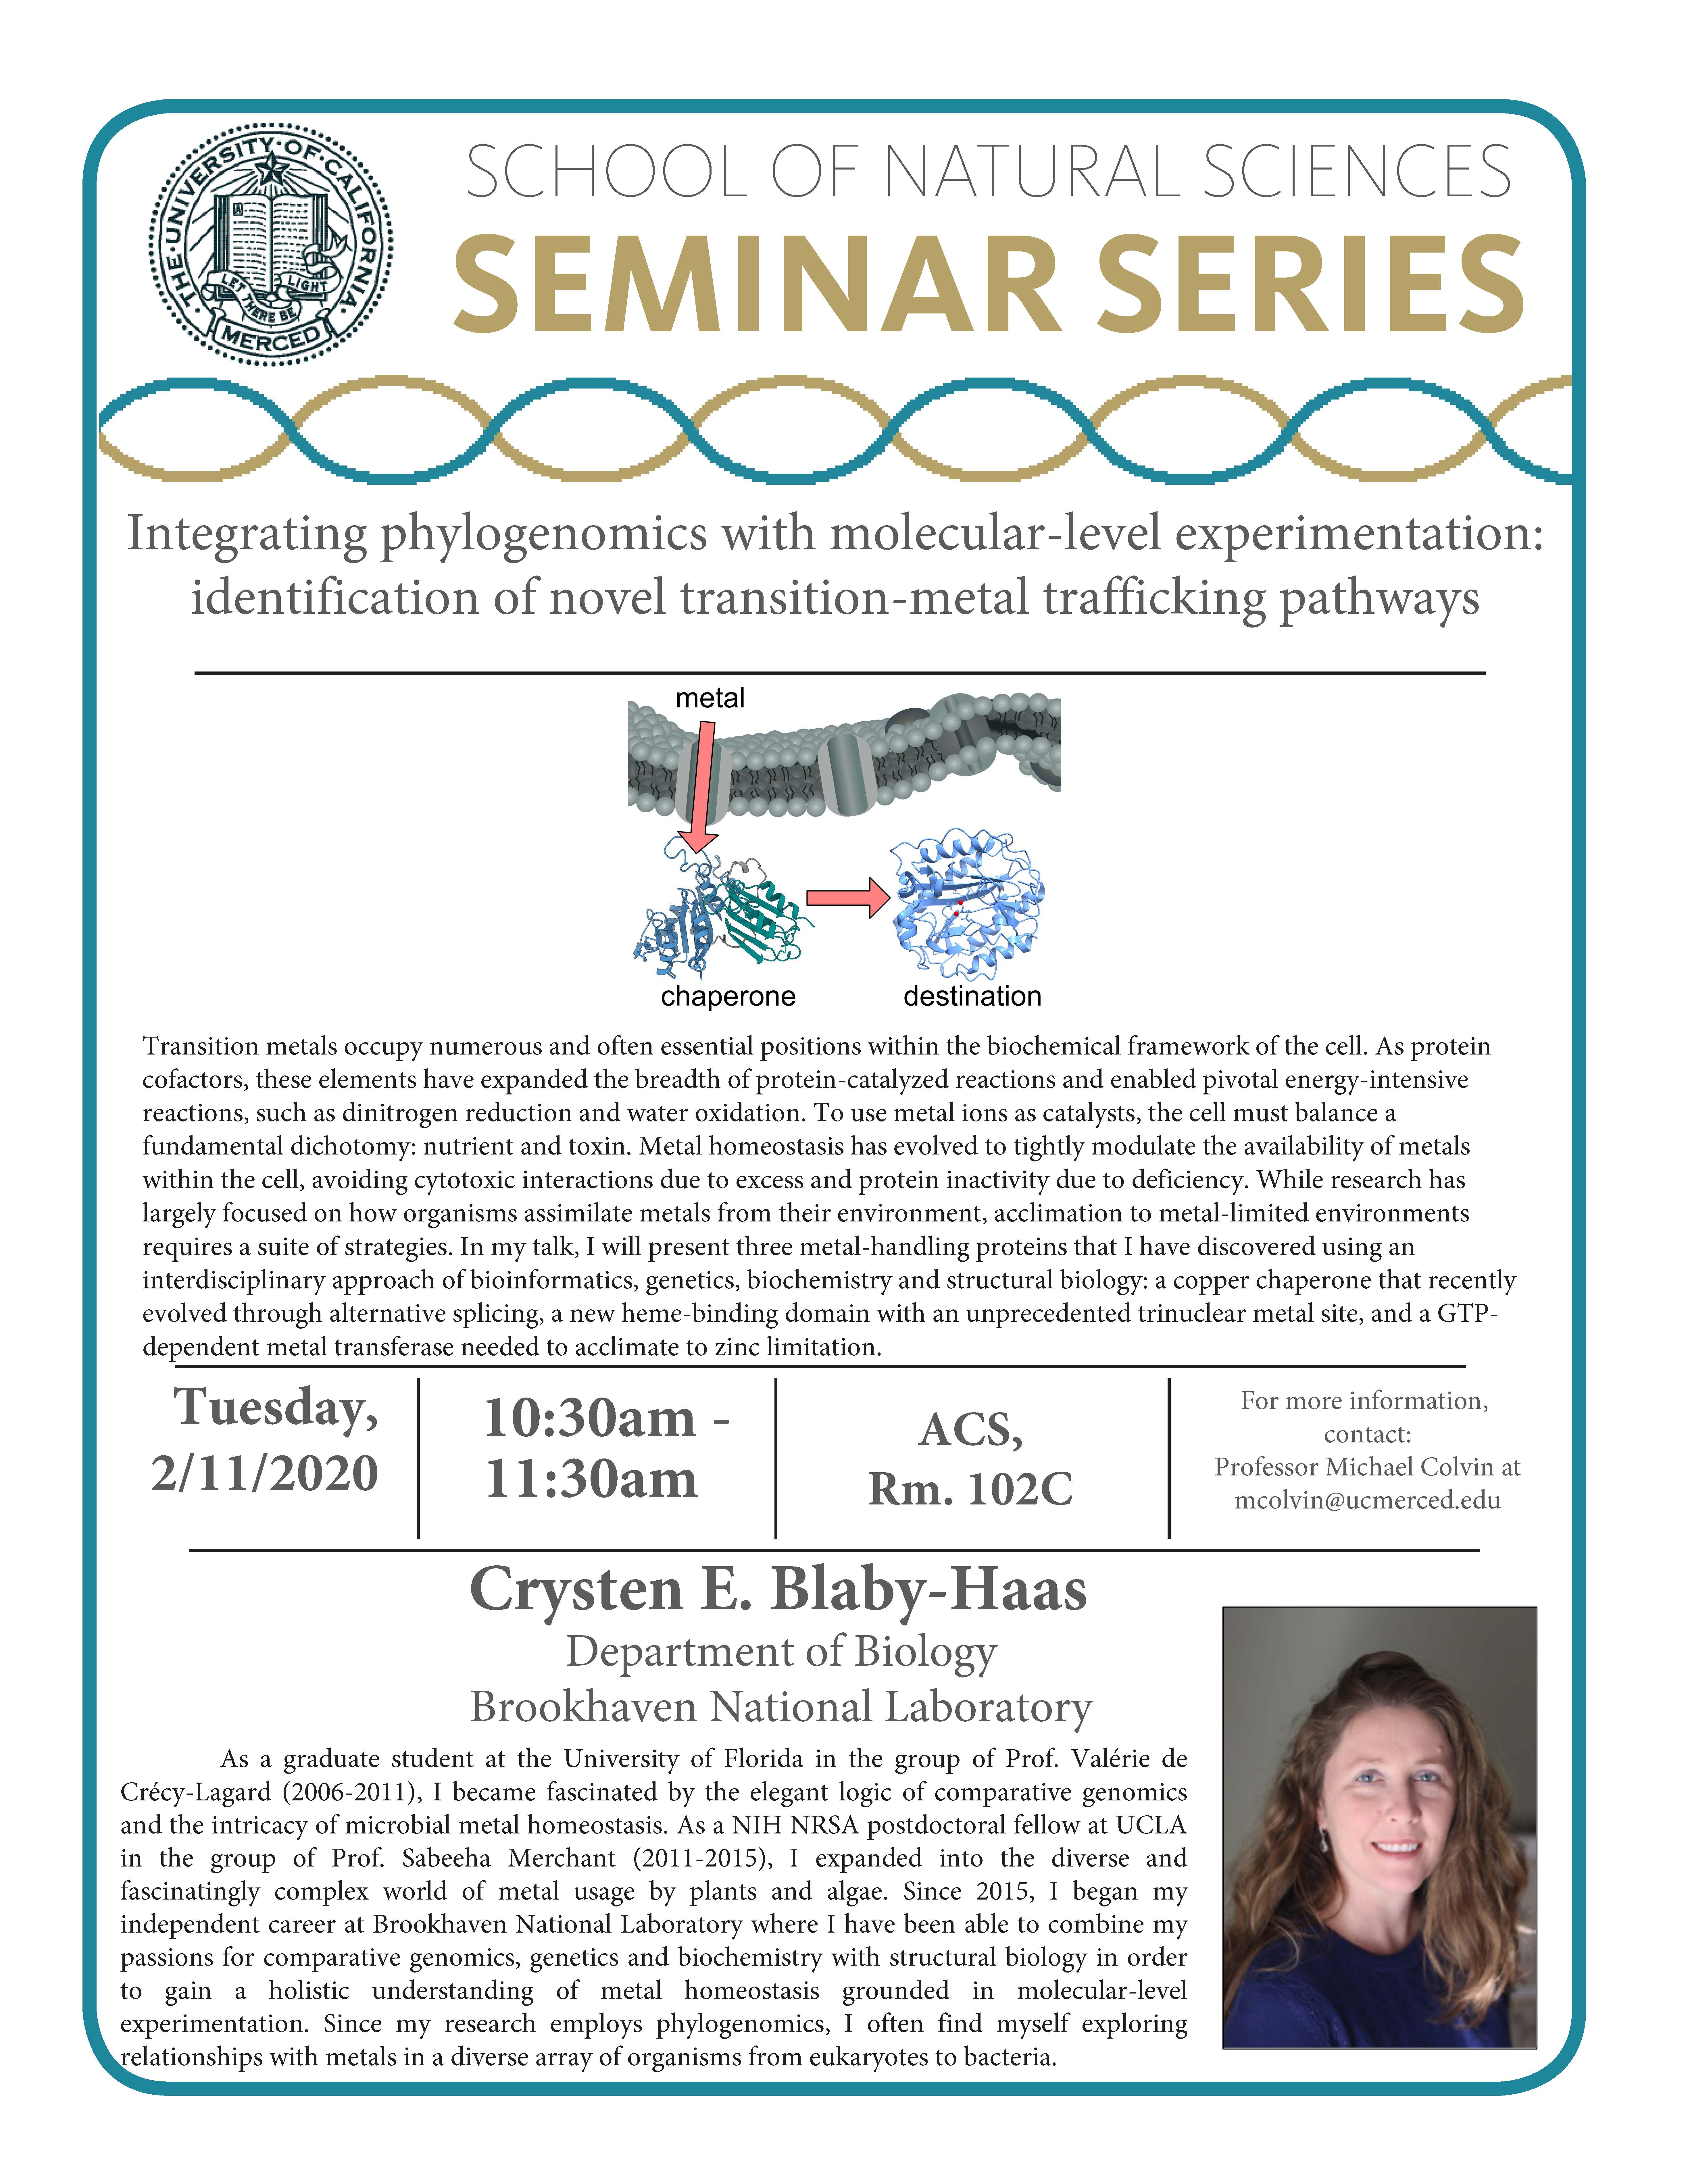 CCB Seminar for Dr. Crysten Blaby